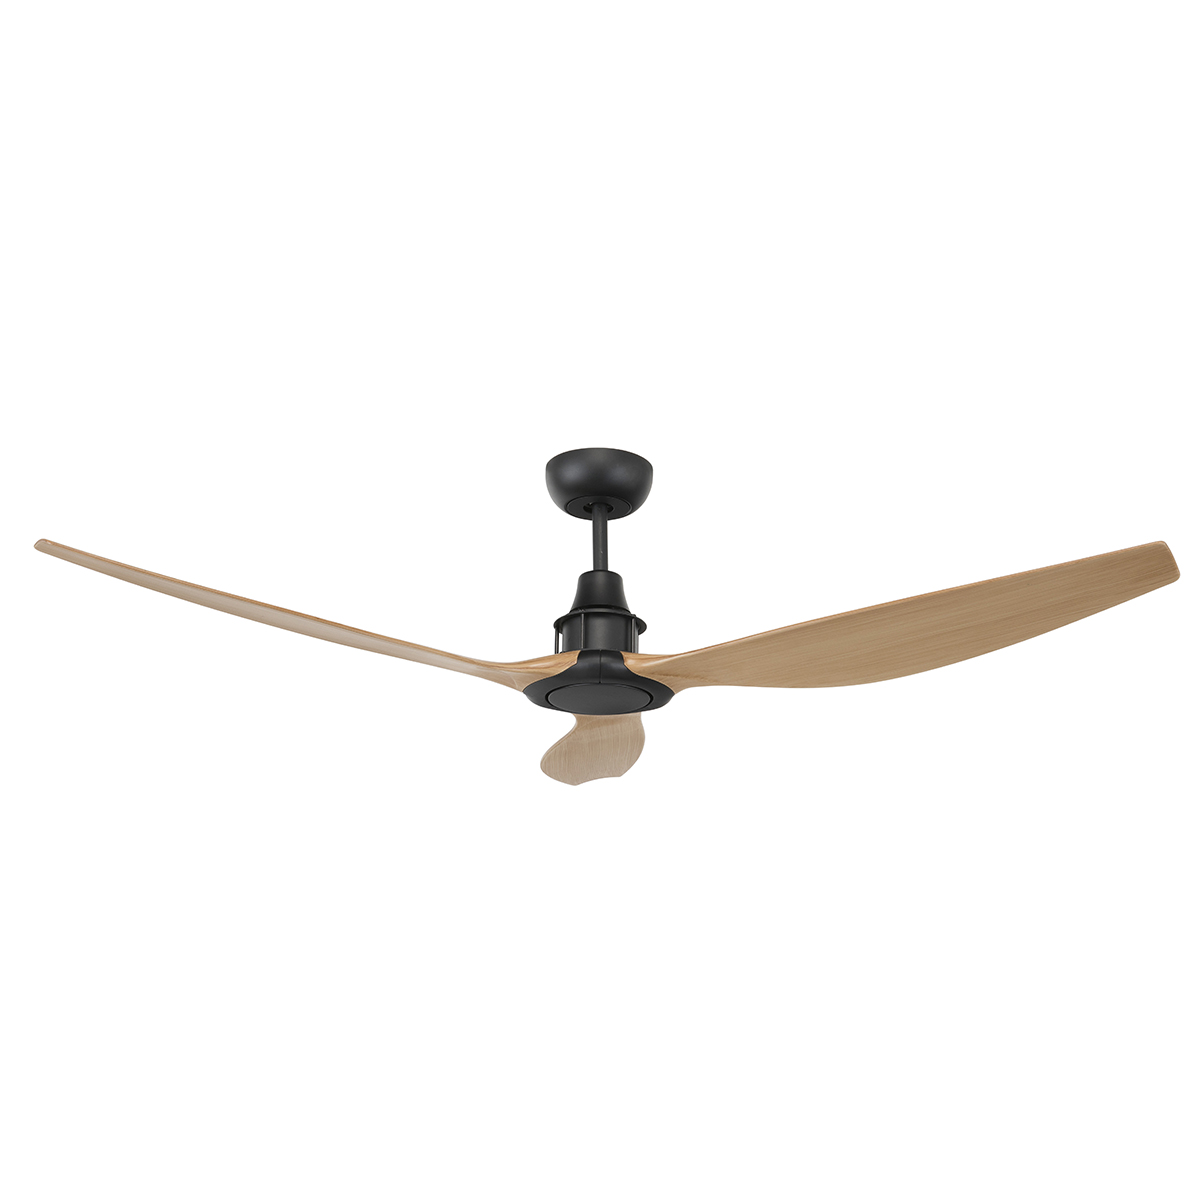 concorde II ceiling fan